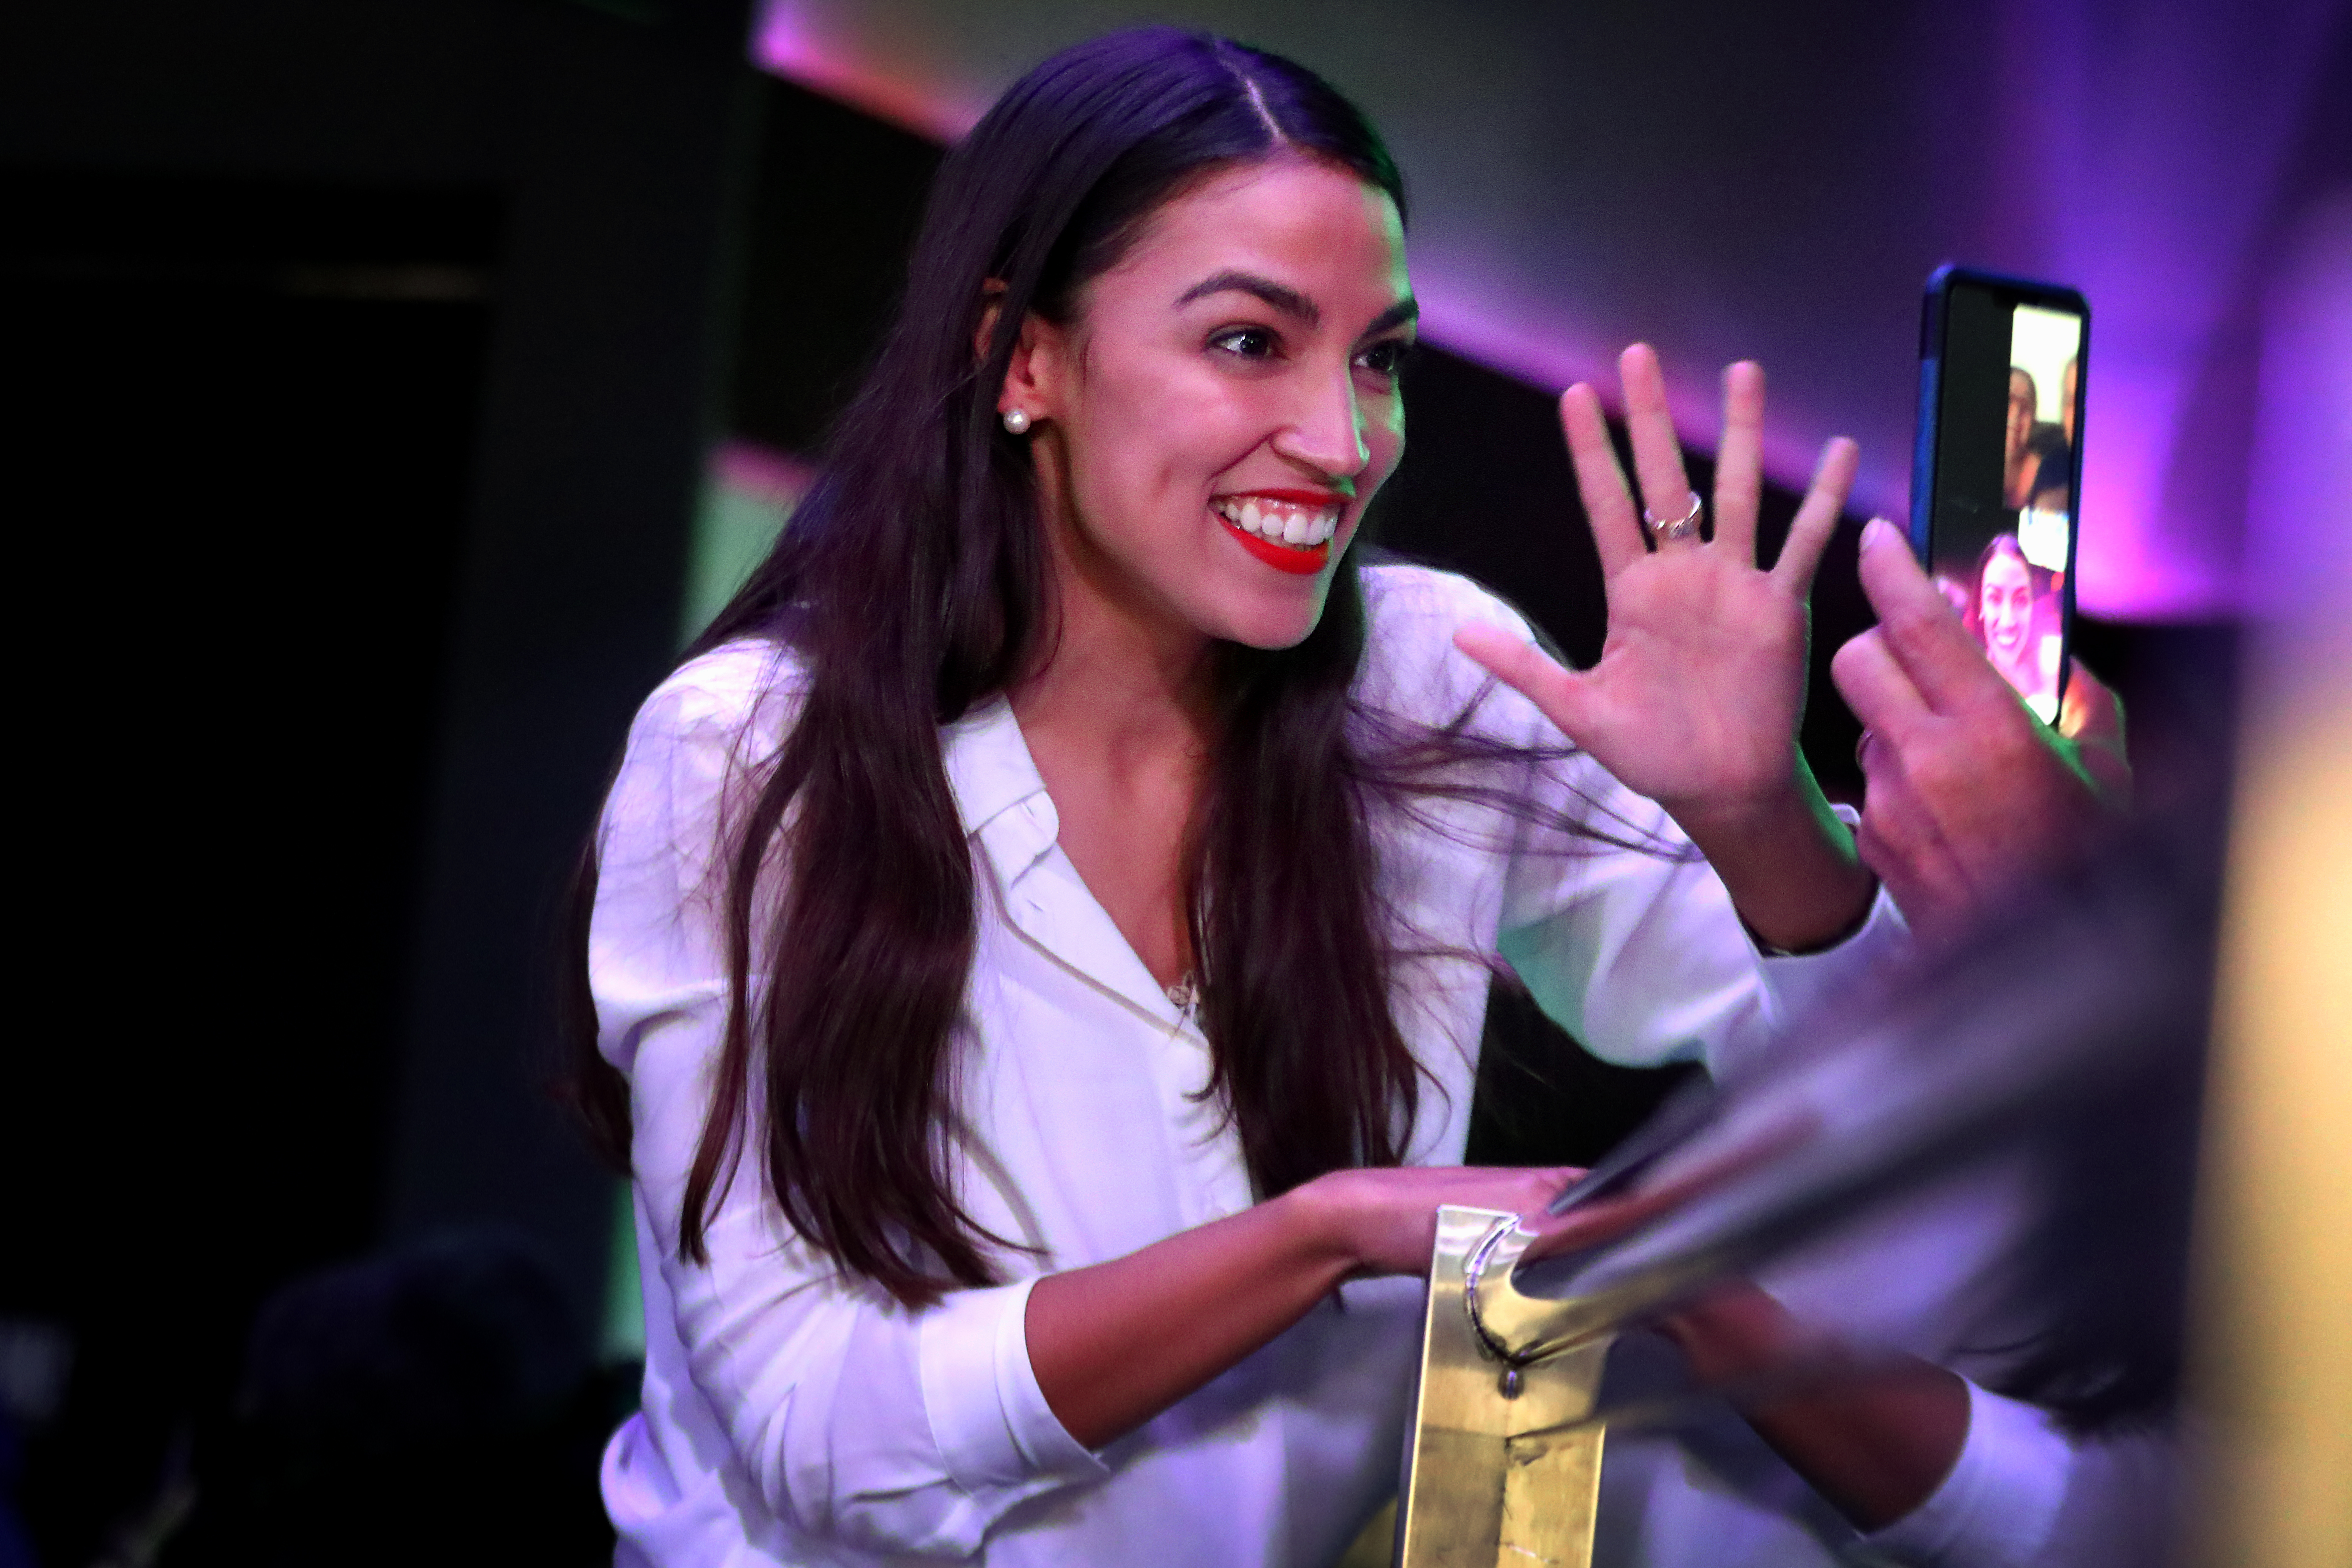 NEW YORK, NY - NOVEMBER 06: Alexandria Ocasio-Cortez celebrates her victory at La Boom night club in Queens on November 6, 2018 in New York City. With her win against Republican Anthony Pappas, Ocasio-Cortez became the youngest woman elected to Congress. (Photo by Rick Loomis/Getty Images)